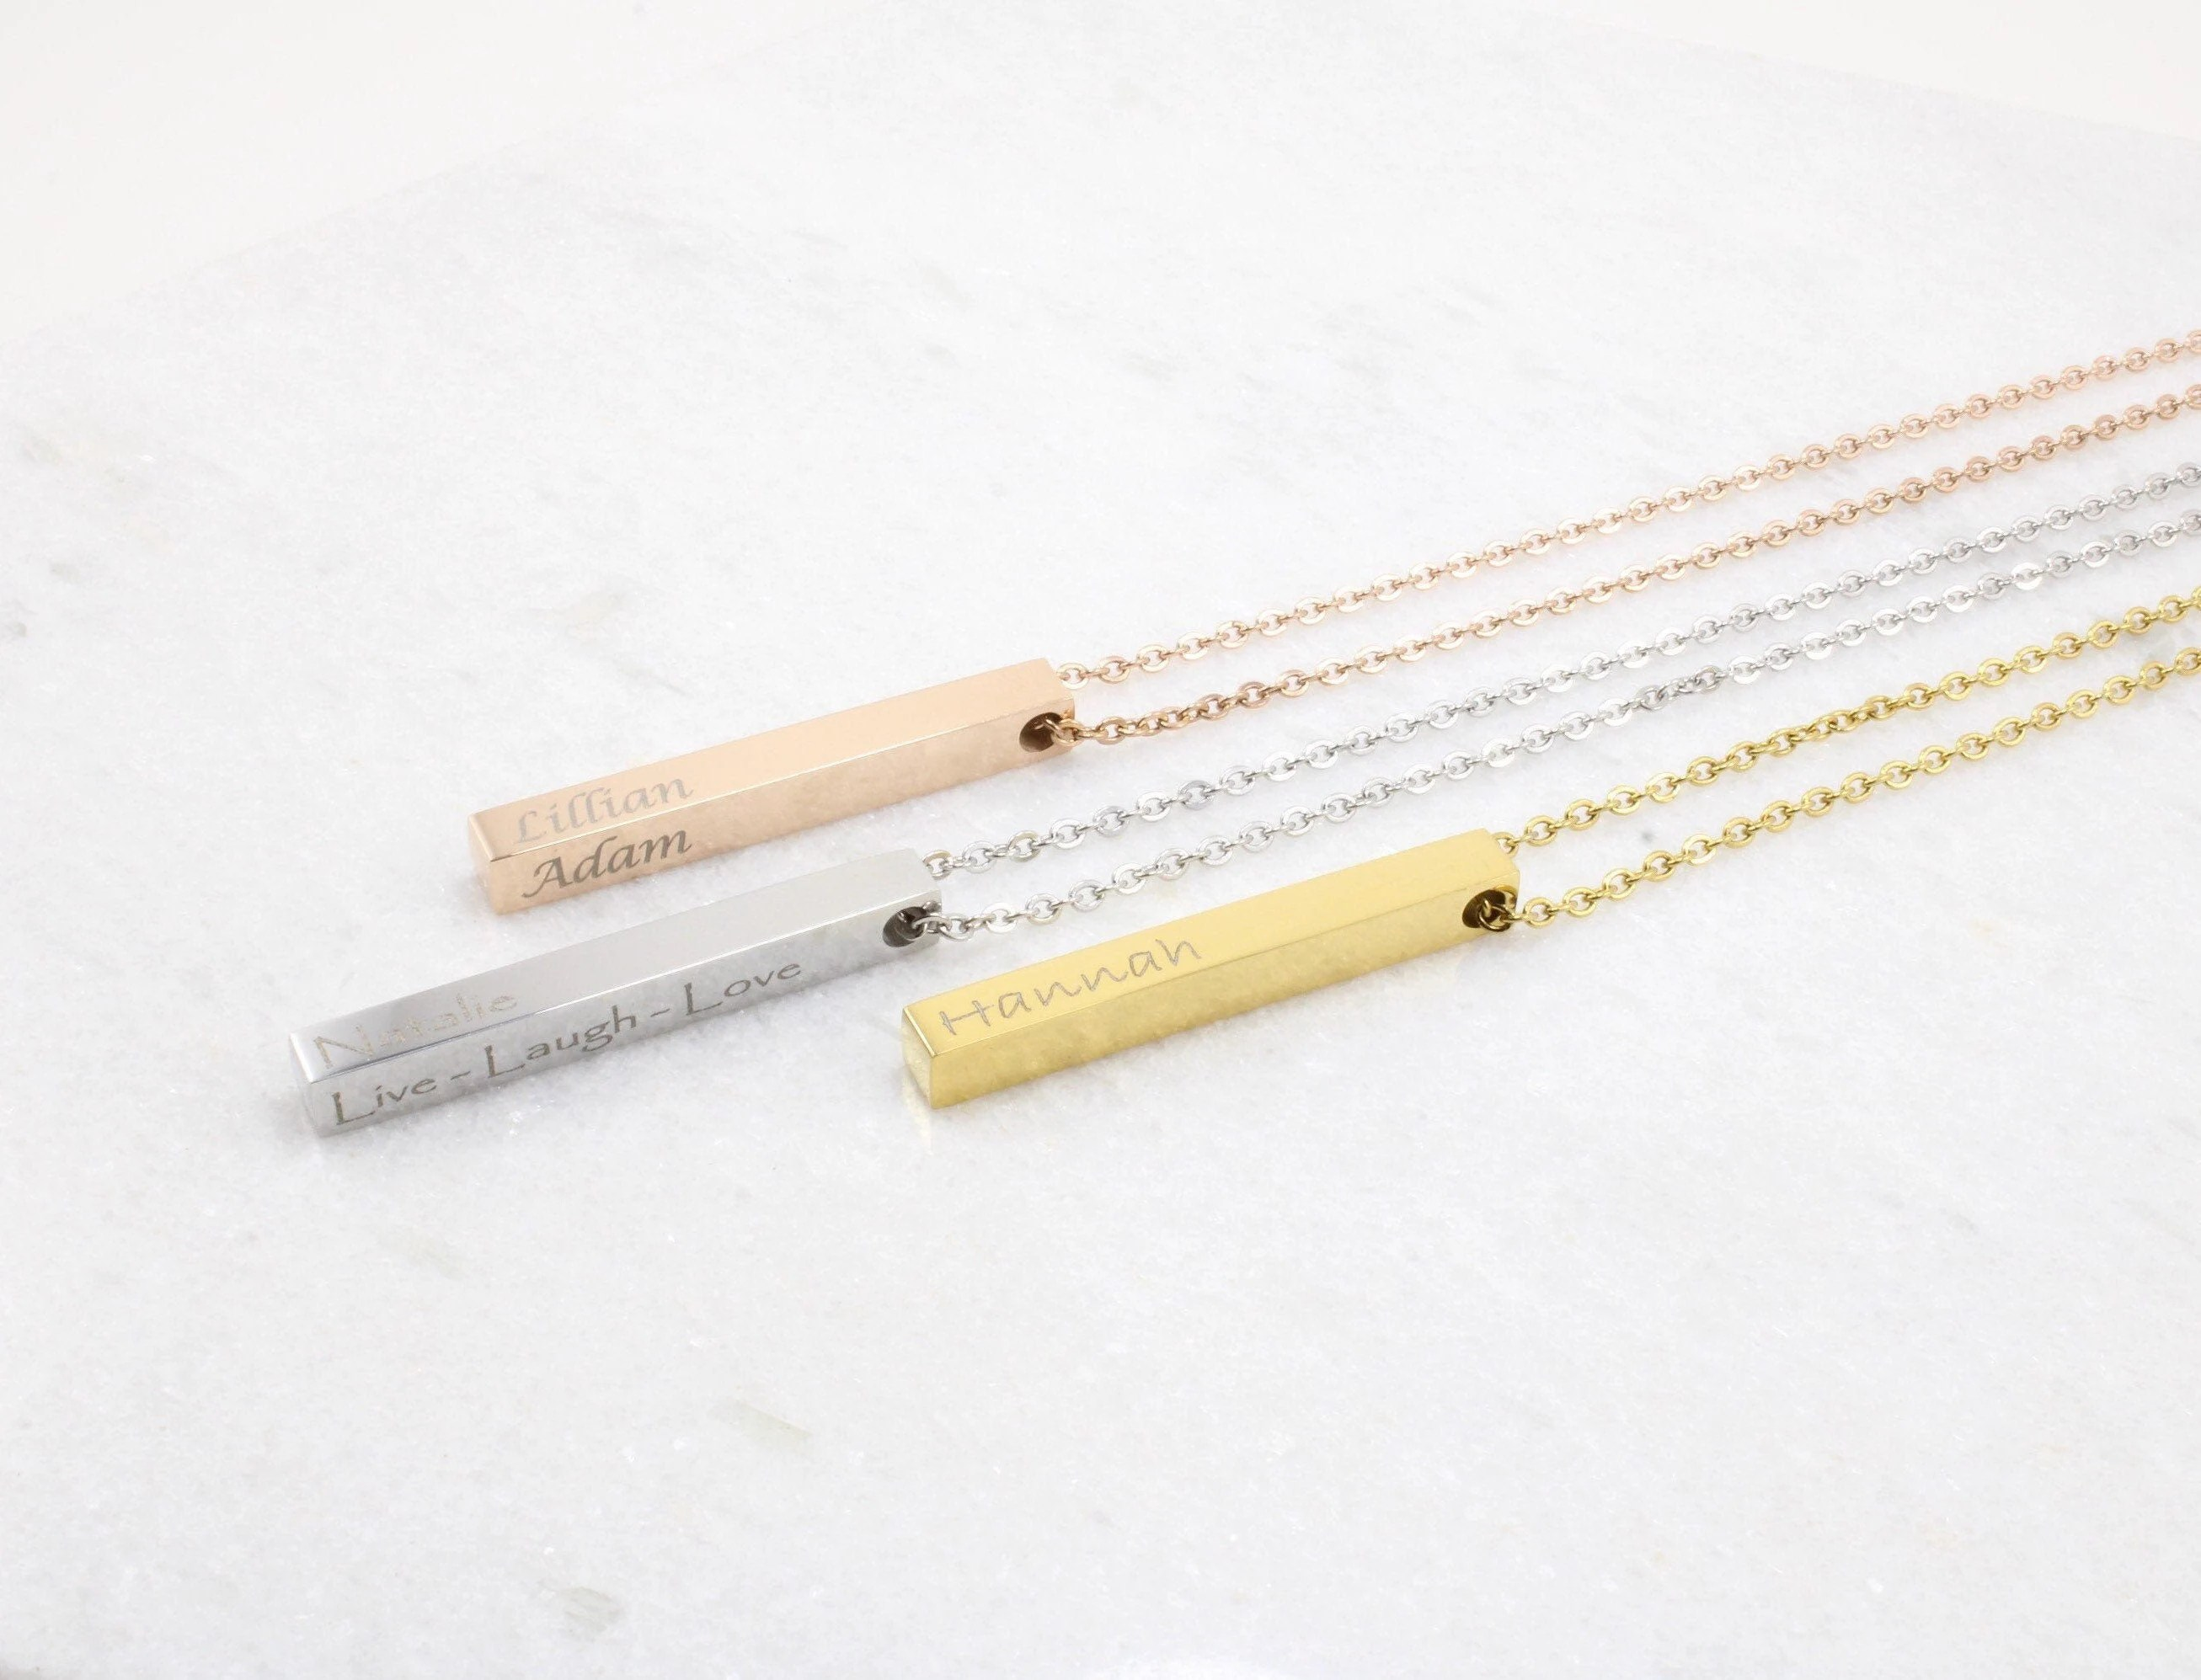 Personalized jewelry bar necklace custom laser engraved image 2